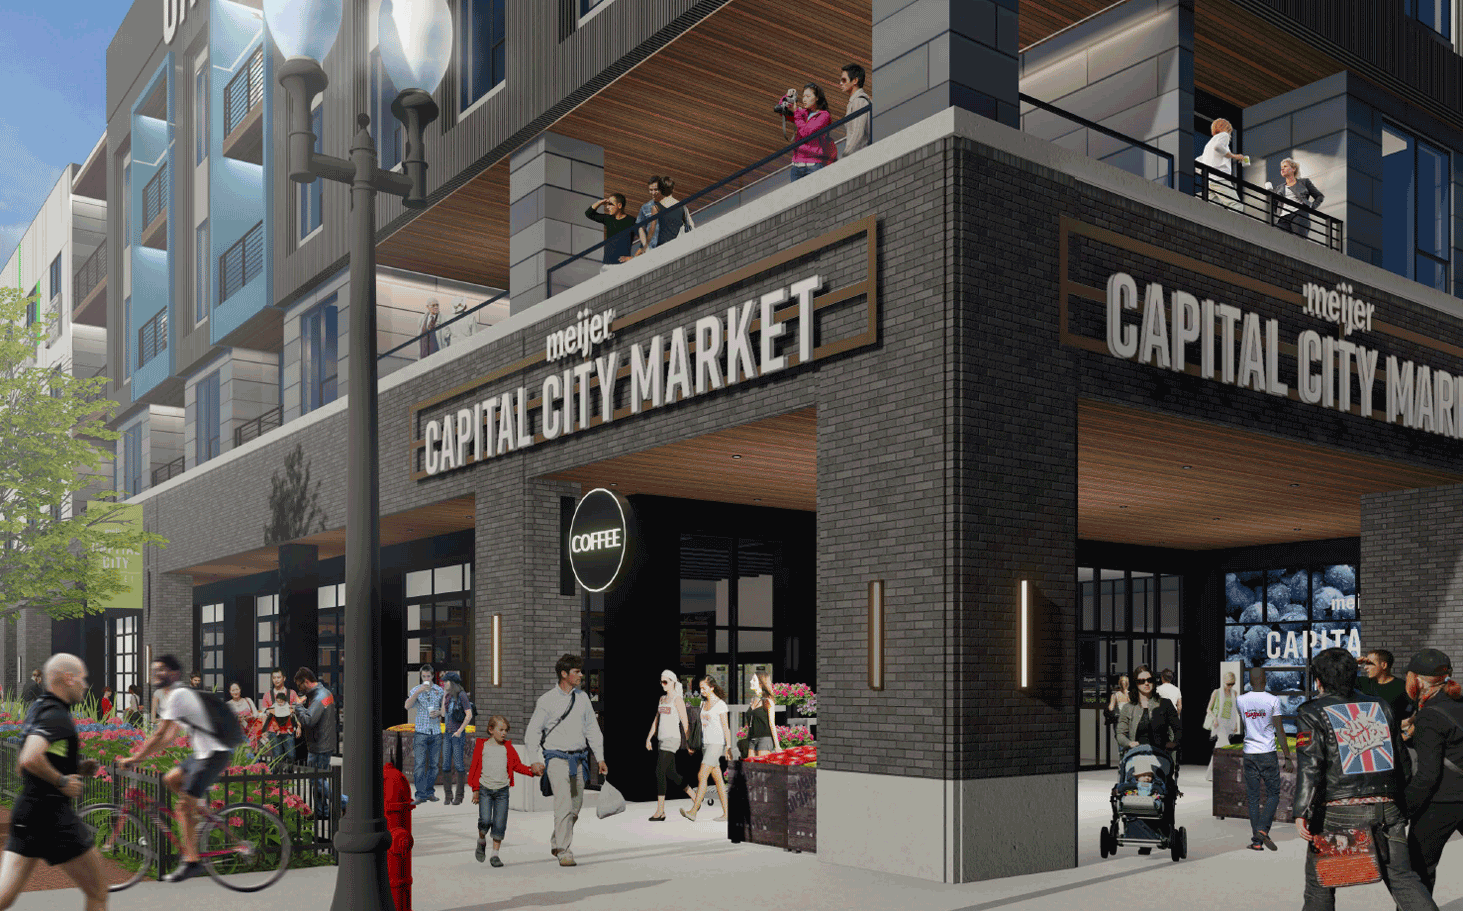 Capital City Market Rendering View up Close